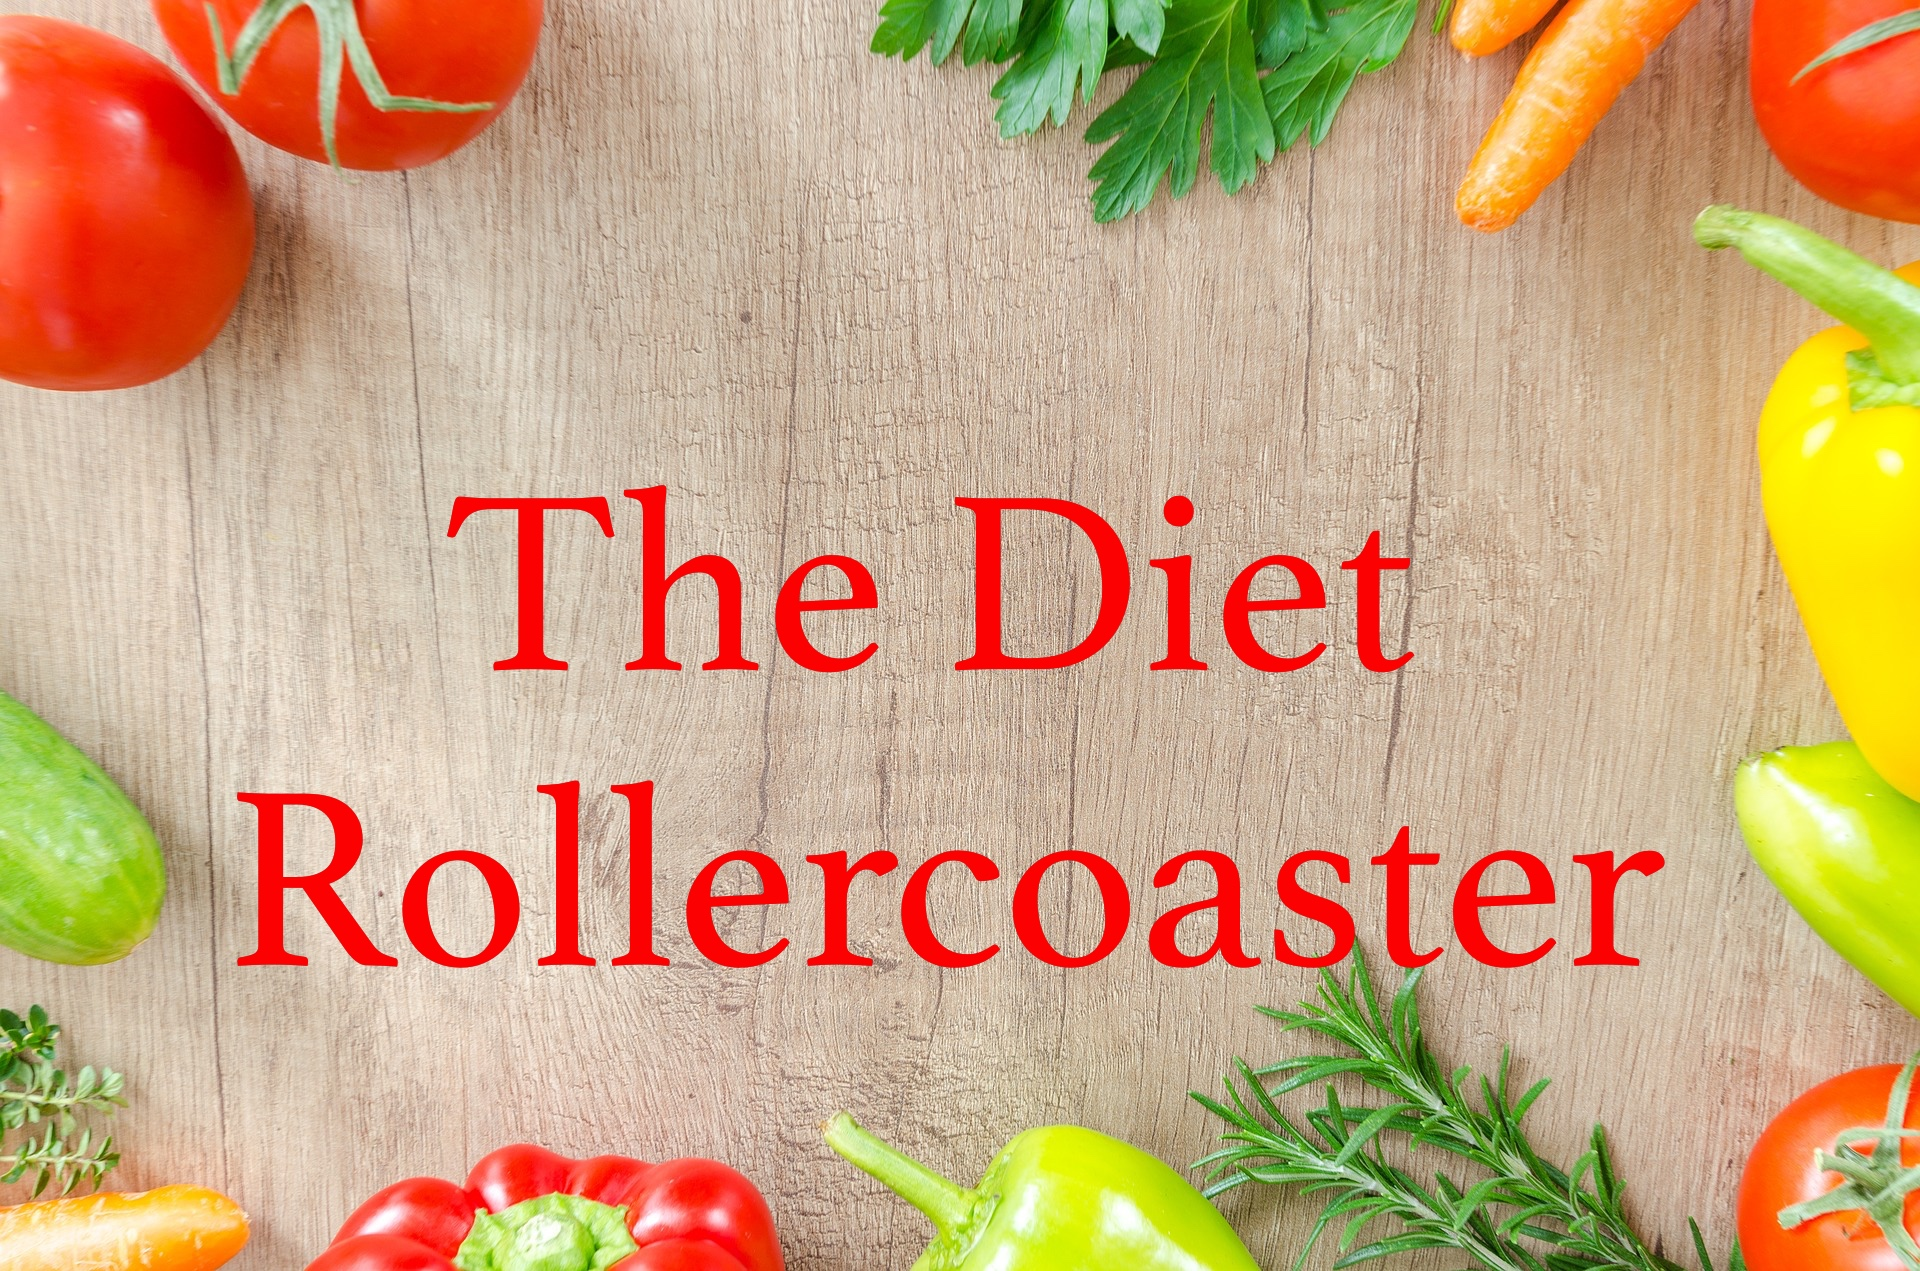 The Diet Rollercoaster